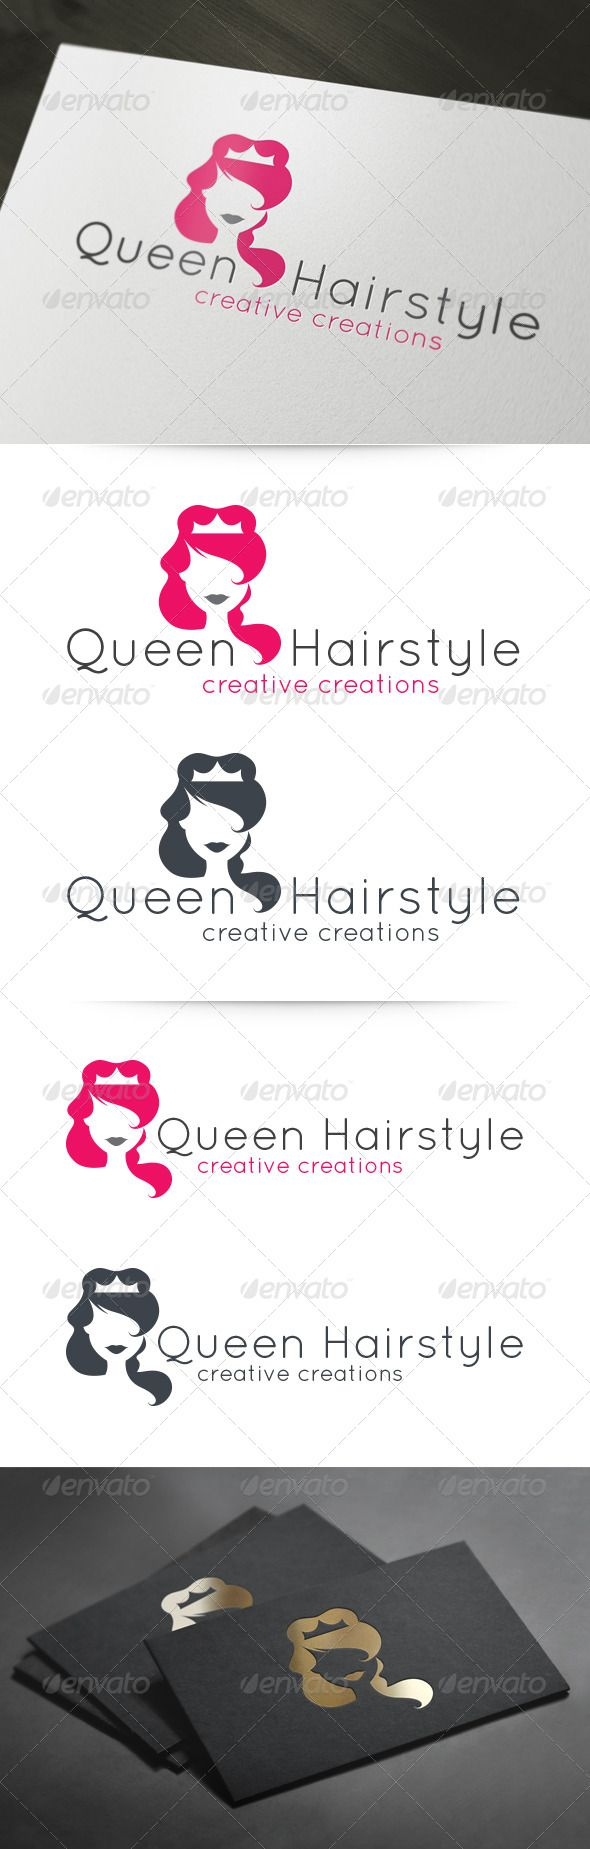 Queen Hairstyle Beauty Salon Logo Template